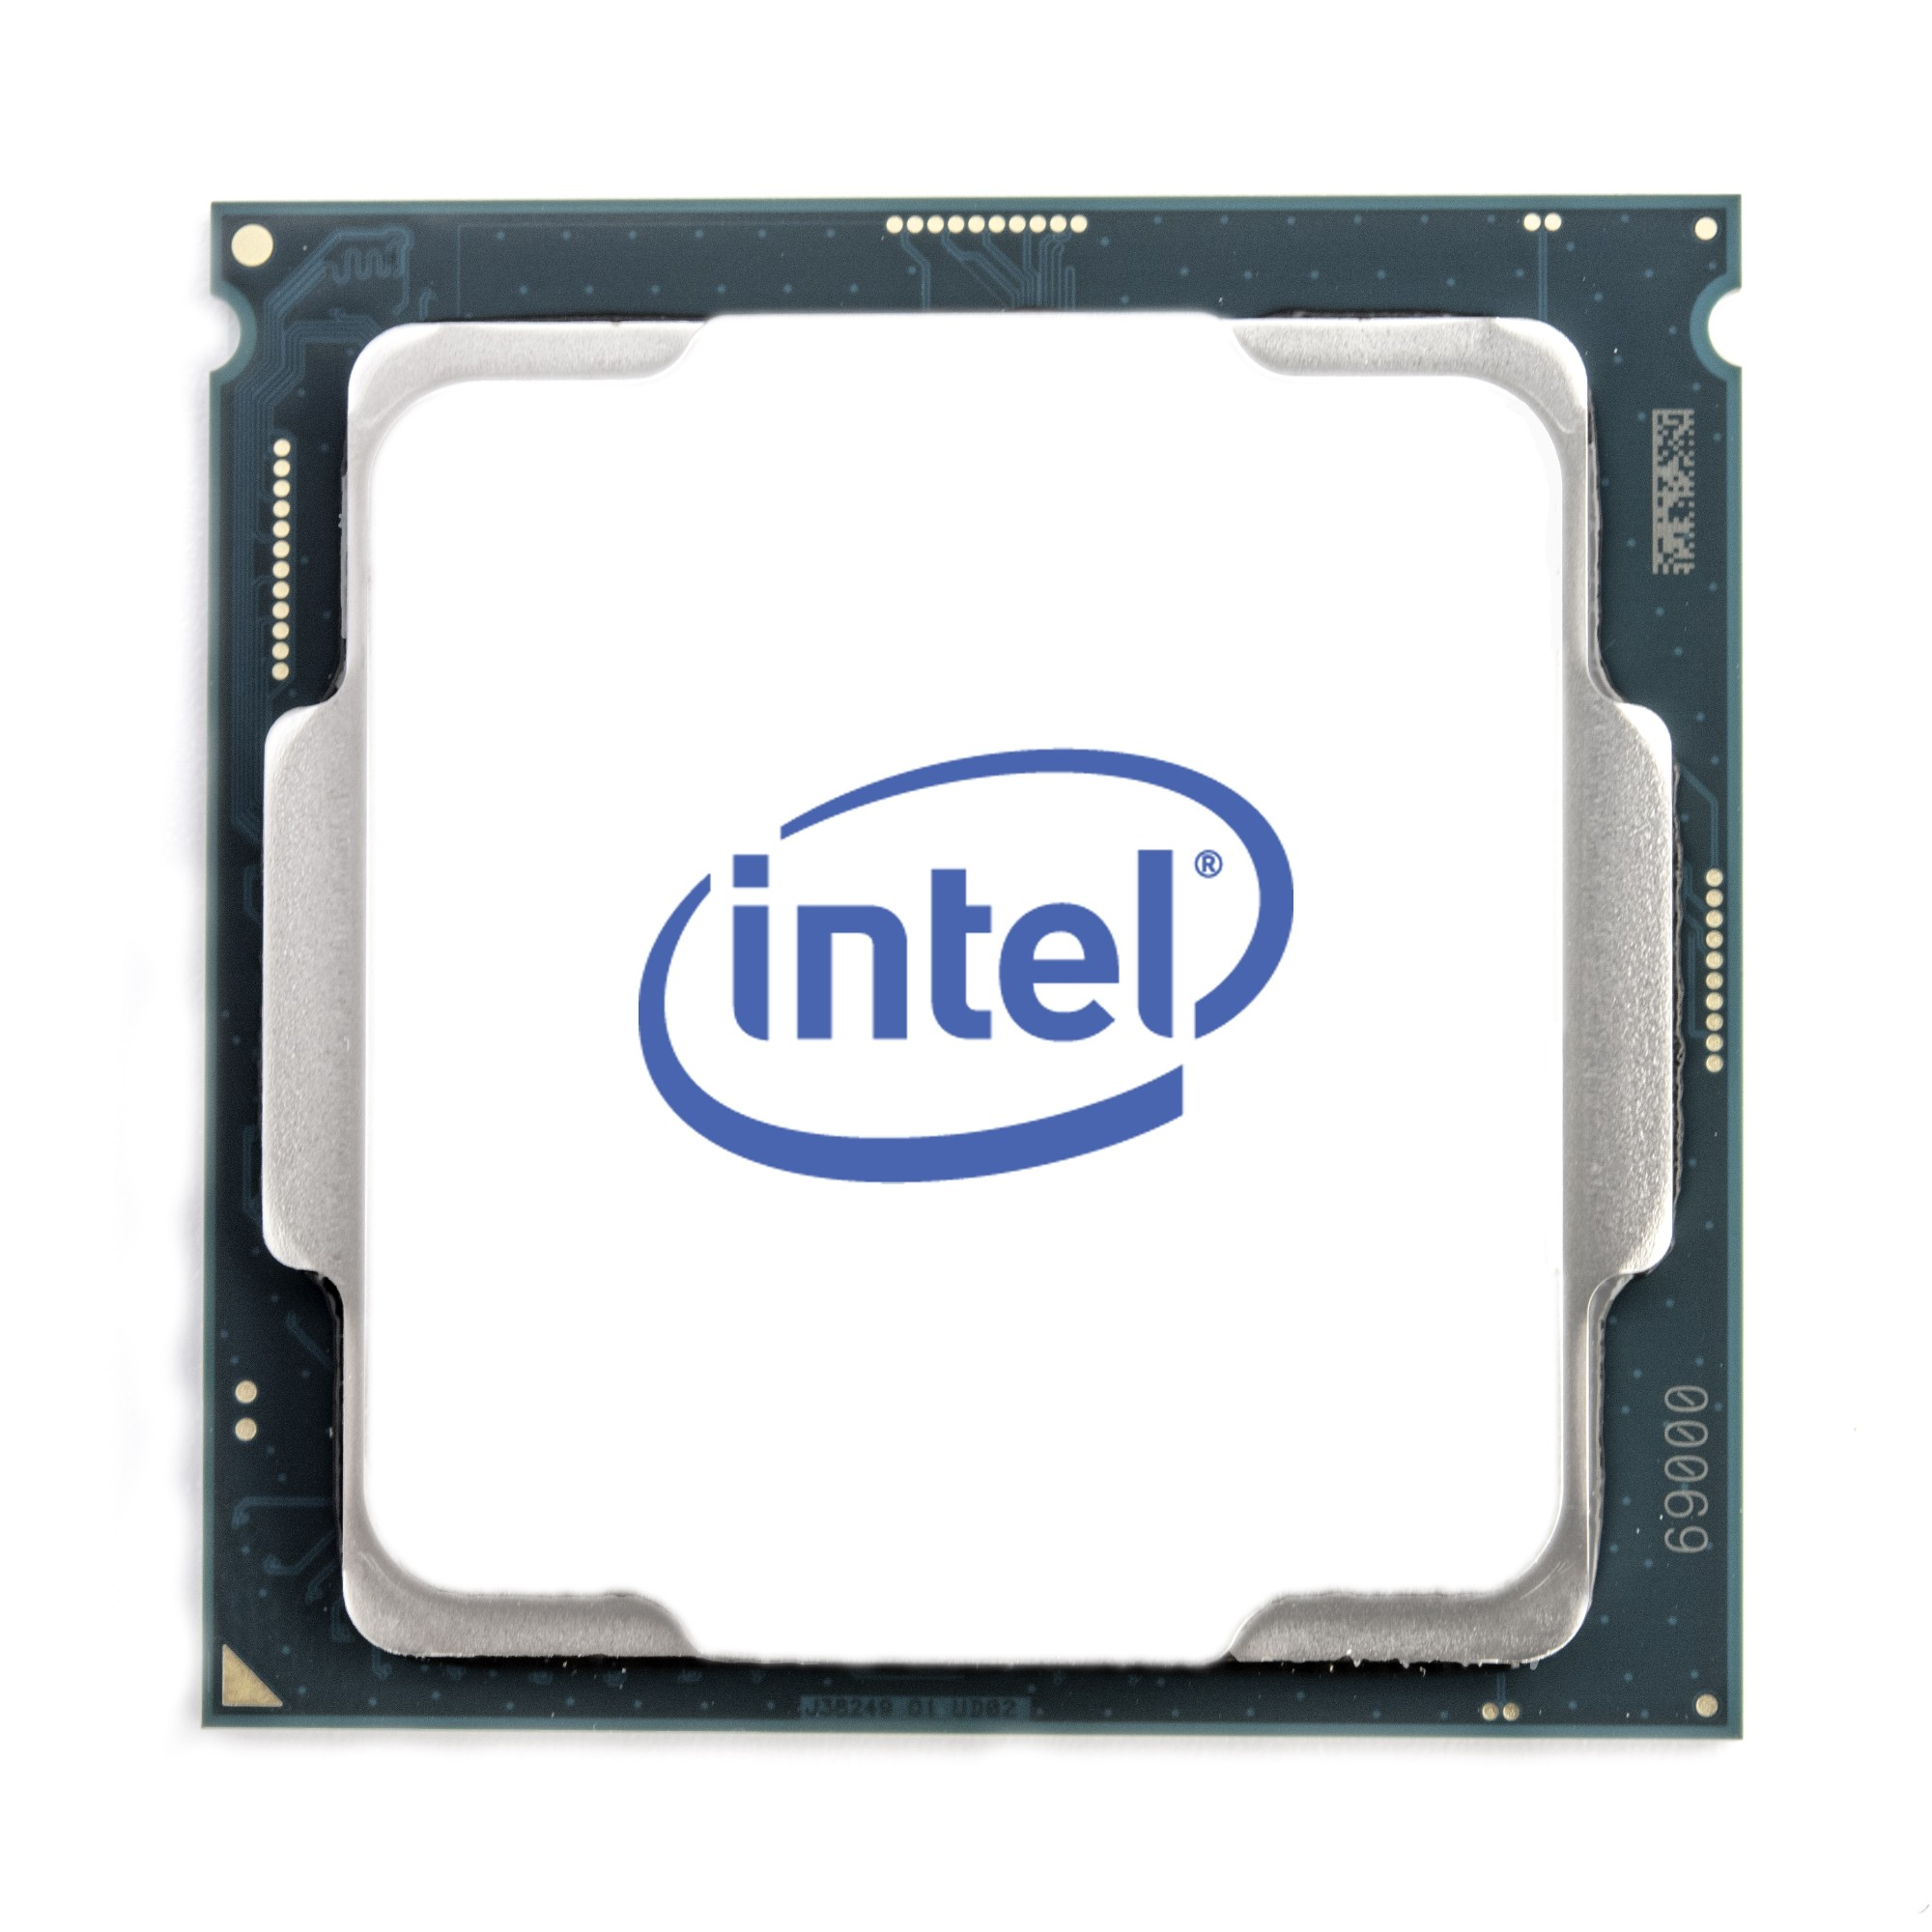 Intel Core i7-9700 processor 3 GHz Box 12 MB Smart Cache